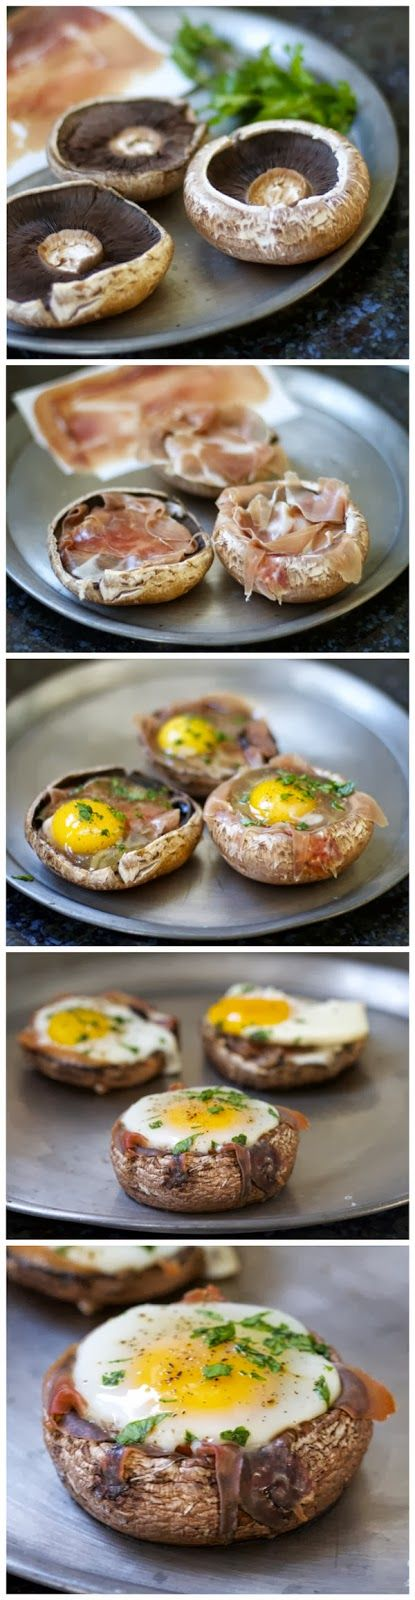 Baked Eggs in Prosciutto Filled Portobello Mushroom Caps